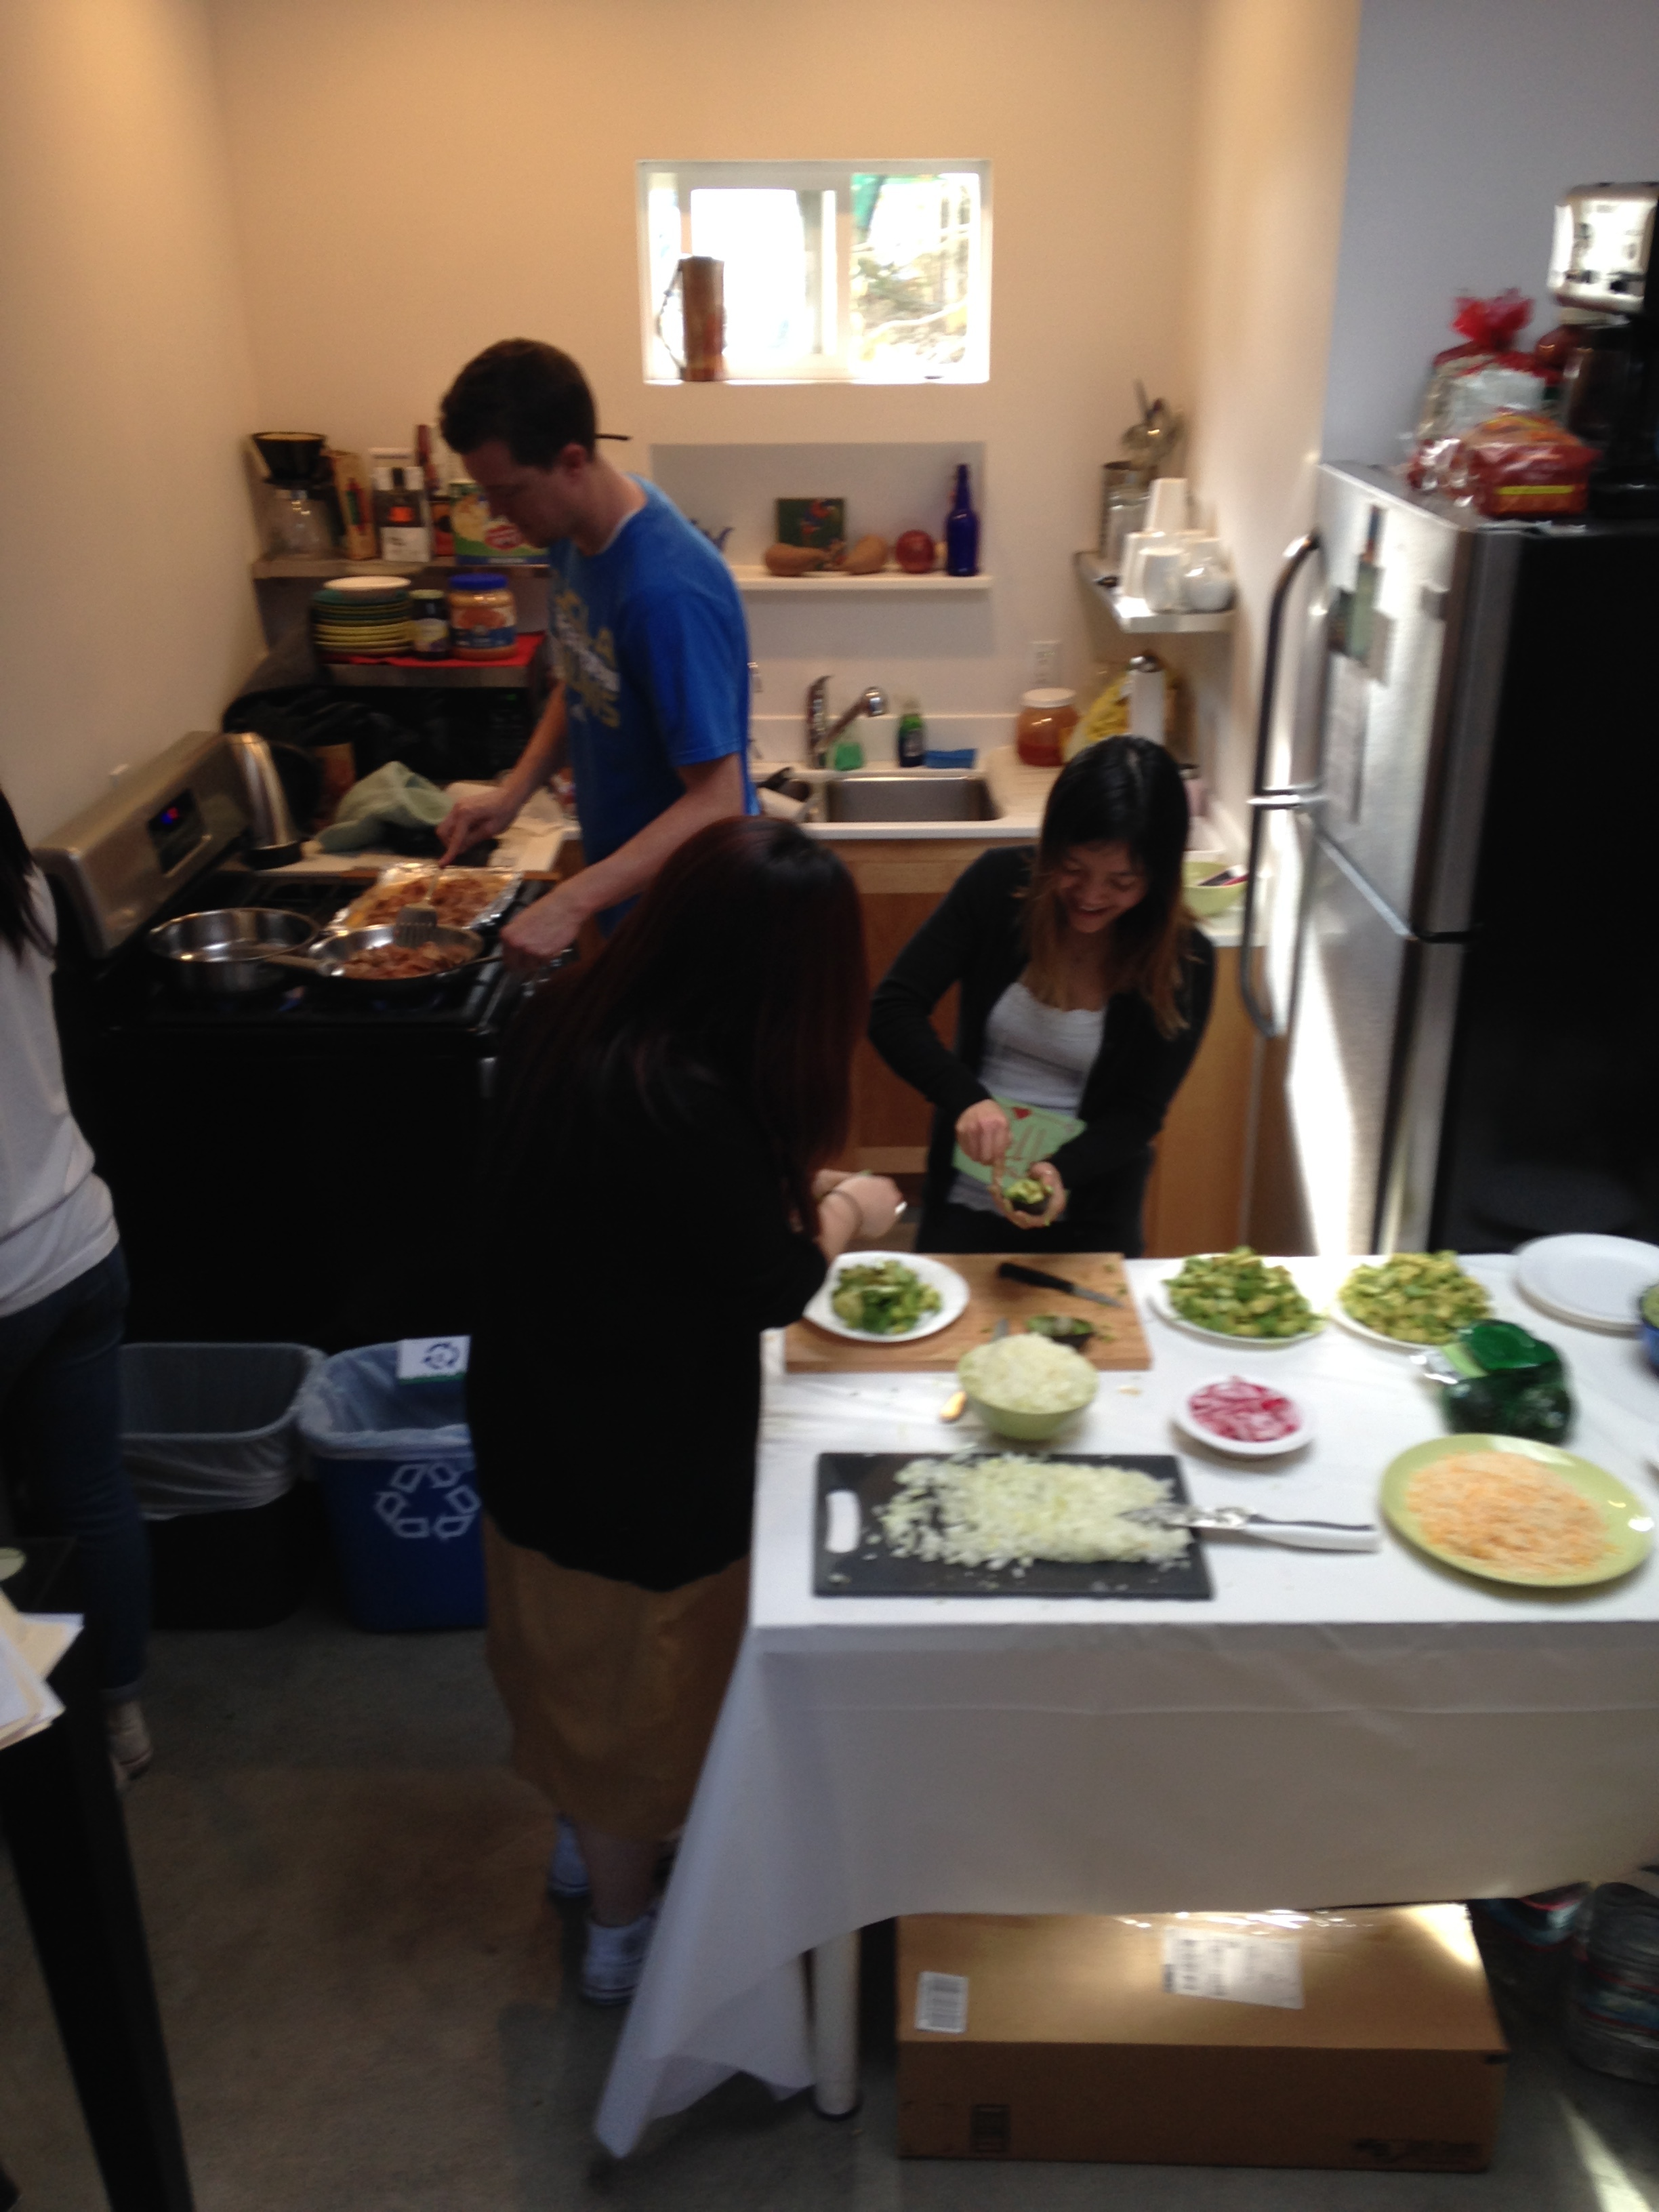 Shoutout to our behind-the-scenes folks, who are not only killin' the mentorship,but also the cooking game!